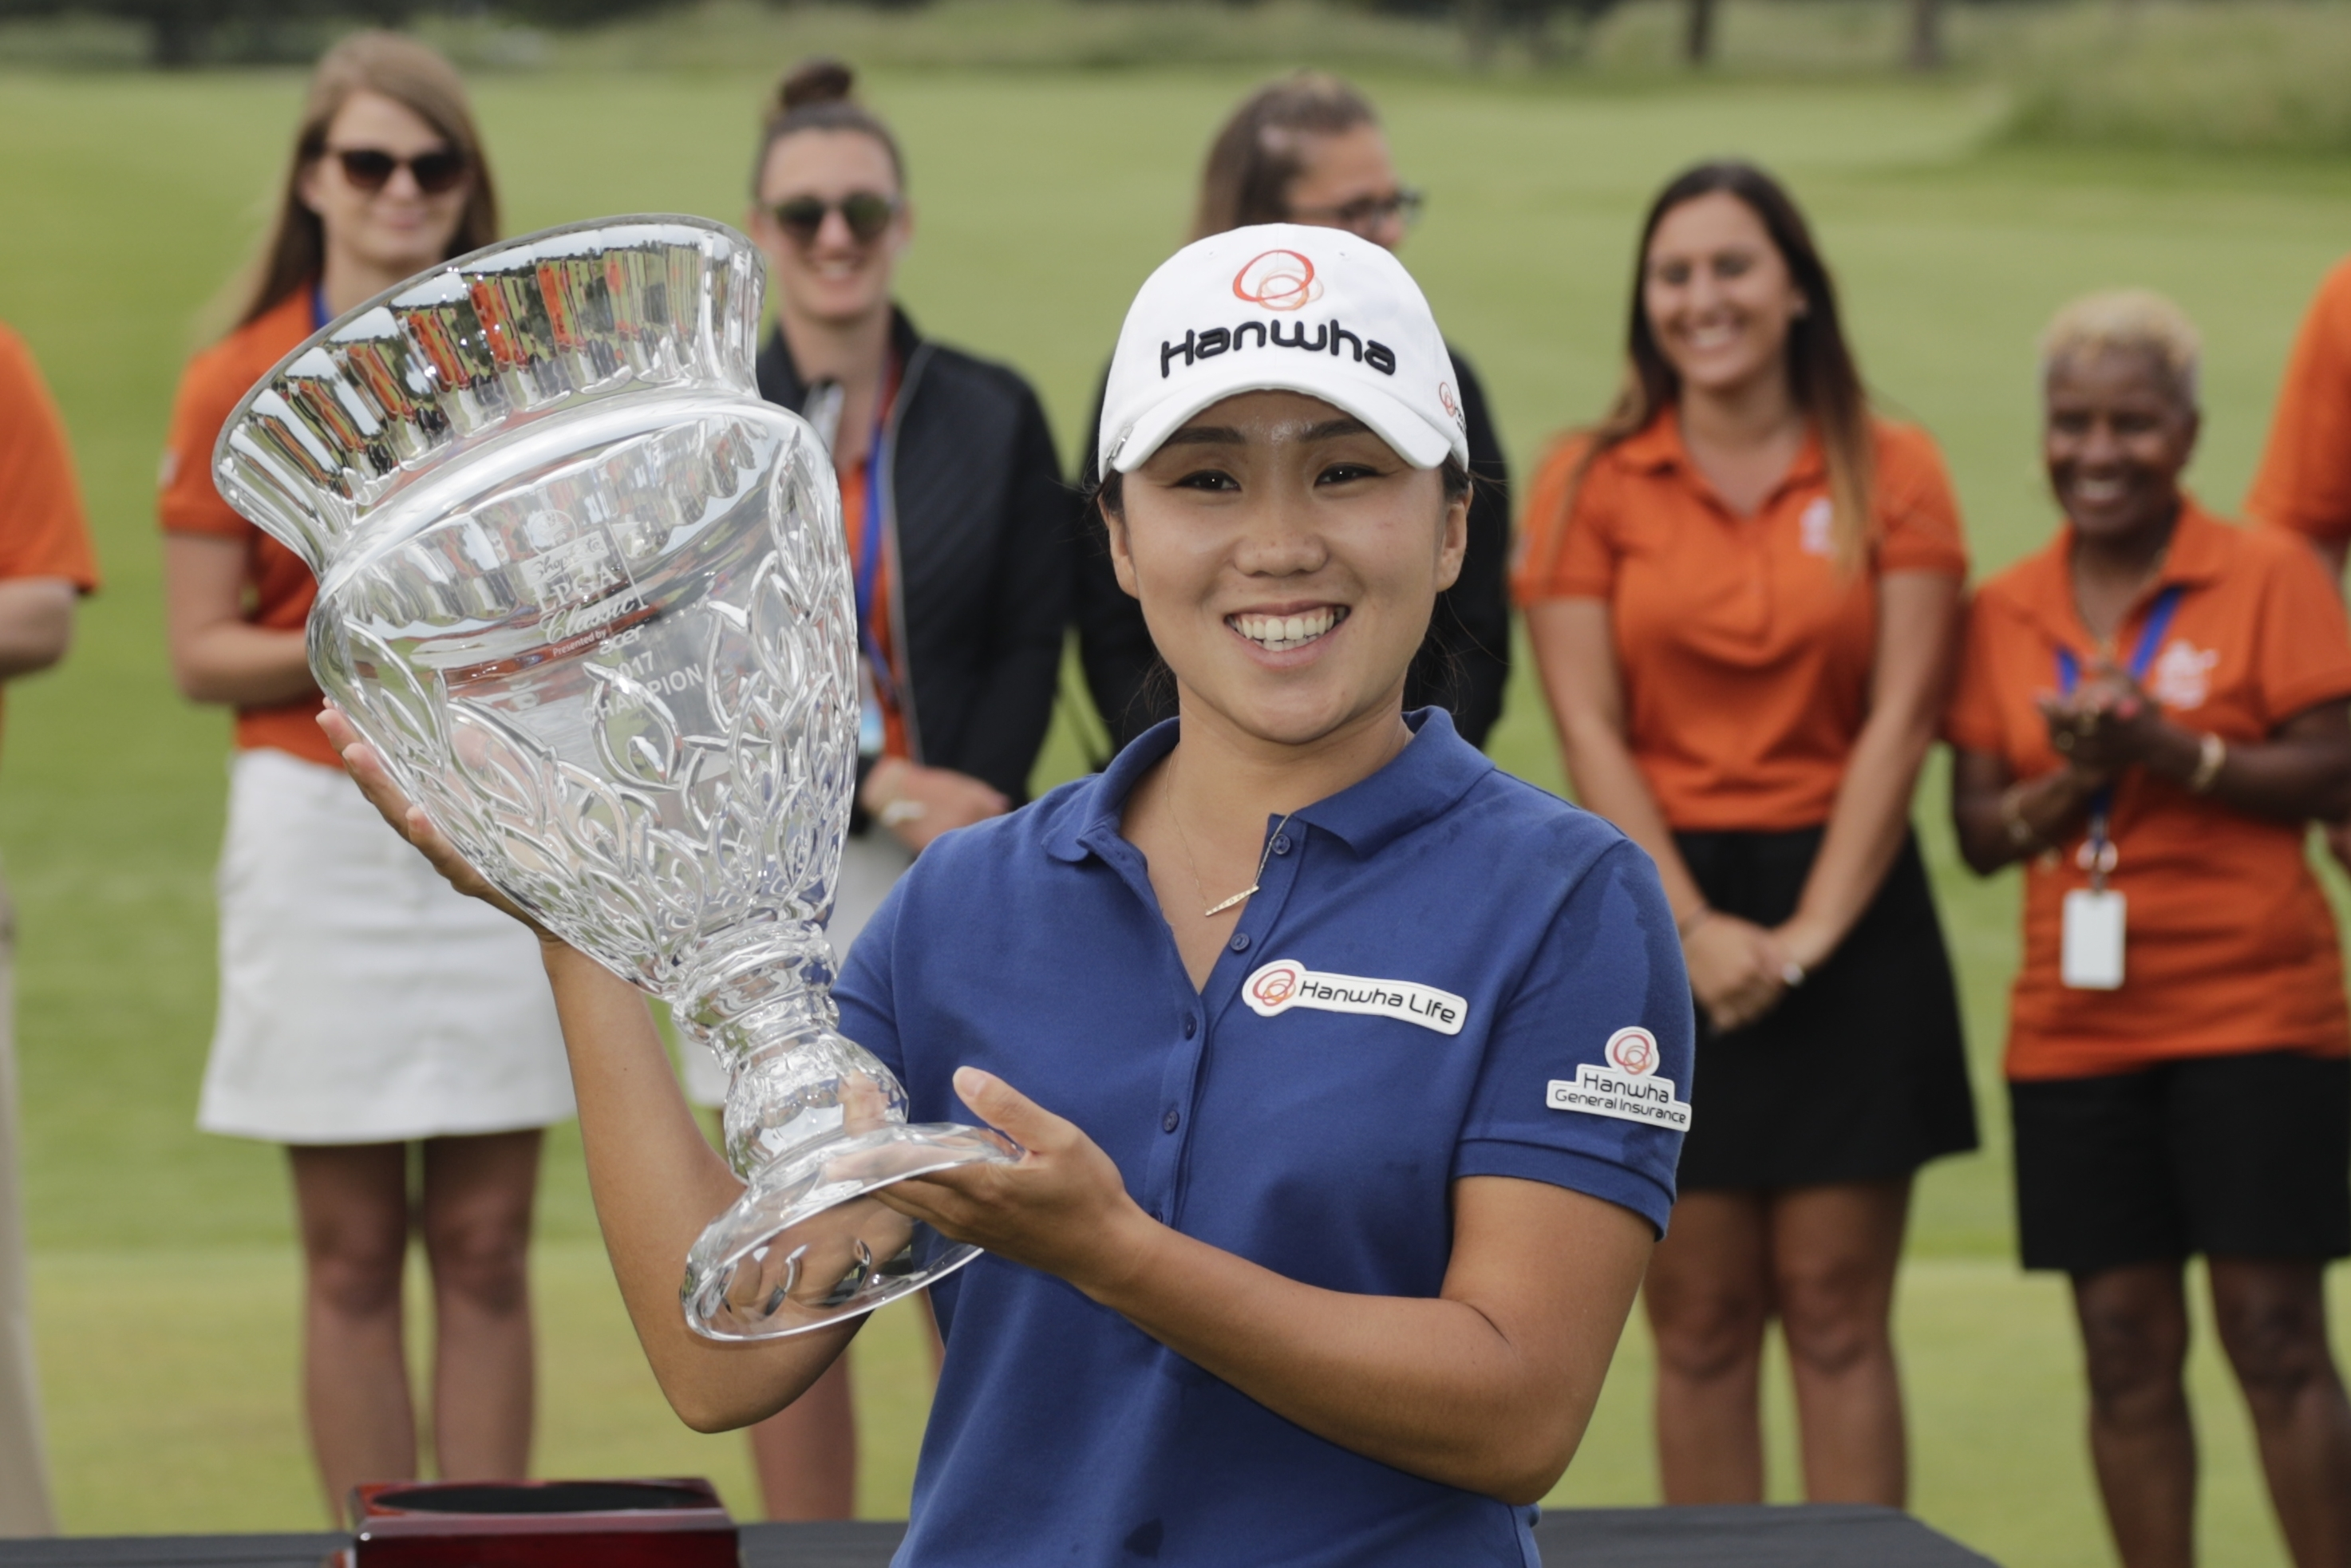 In-Kyung Kim, of South Korea, holds the trophy as she celebrates winning the ShopRite LPGA Classic golf tournament Sunday, June 4, 2017, in Galloway Township, N.J. (AP Photo/Frank Franklin II)